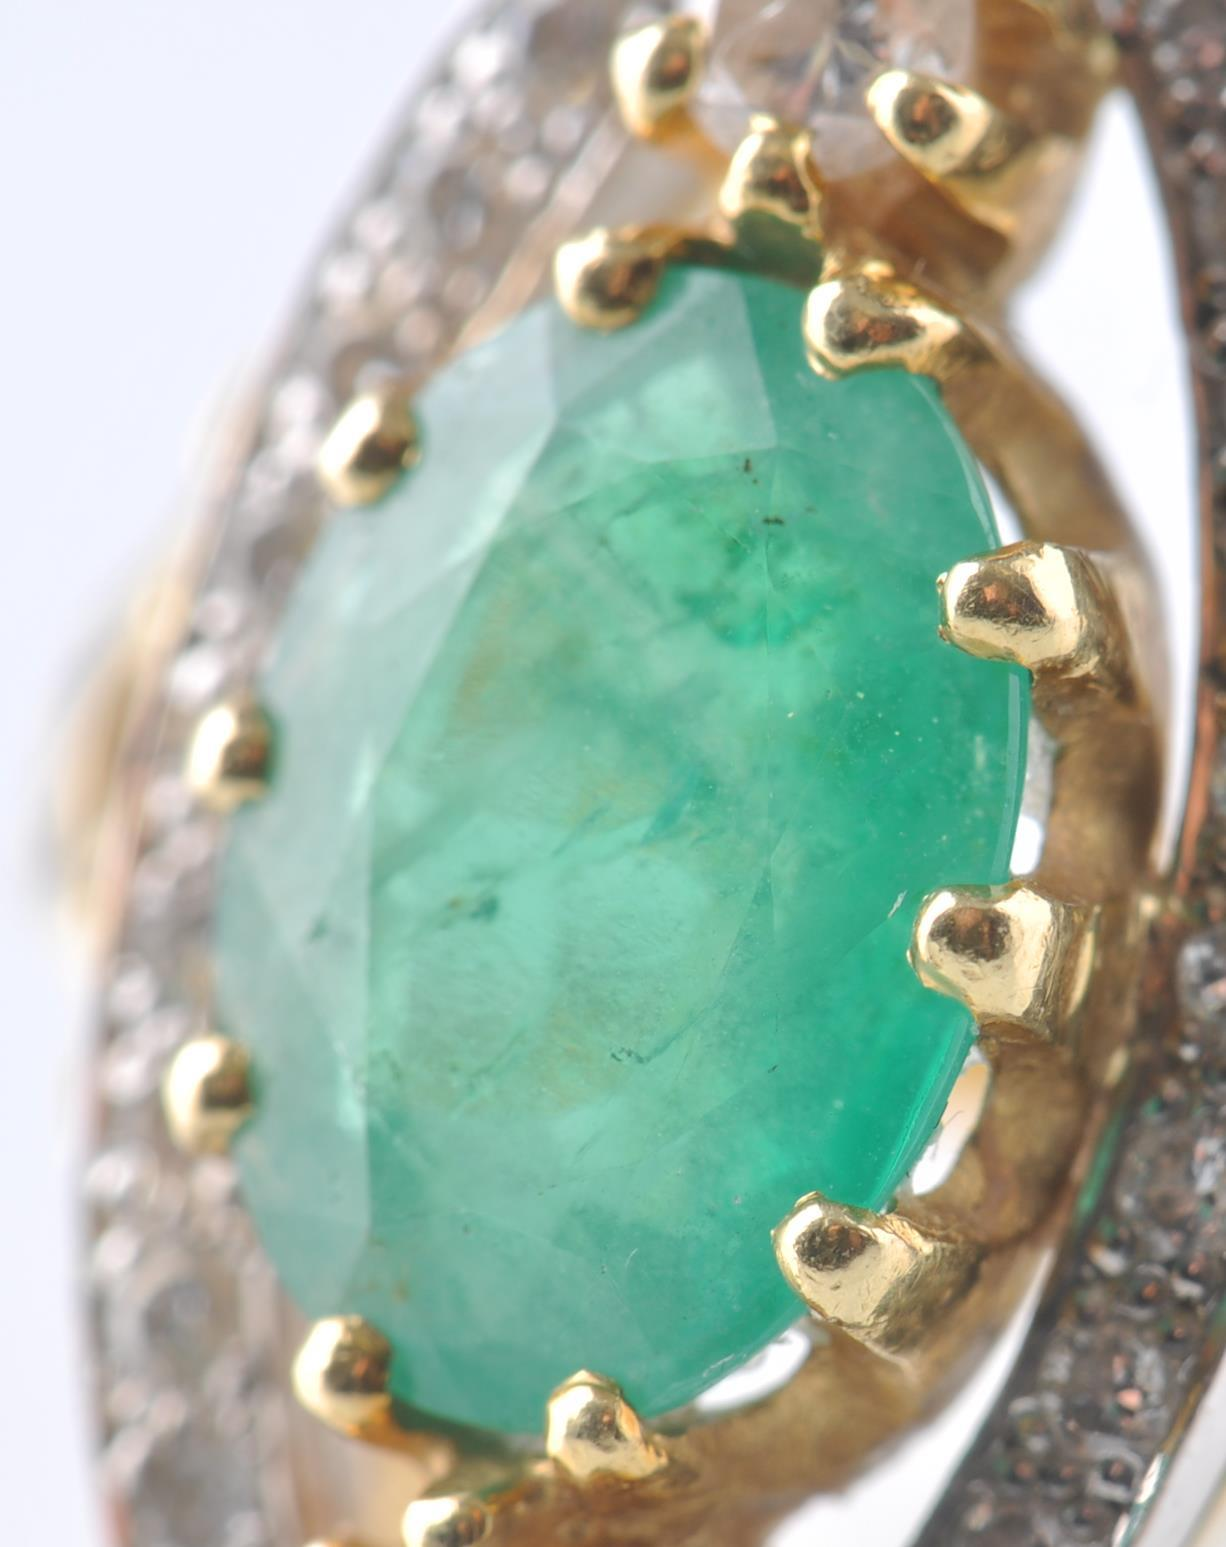 A HALLMARKED 18CT GOD EMERALD AND DIAMOND RING - Image 5 of 11